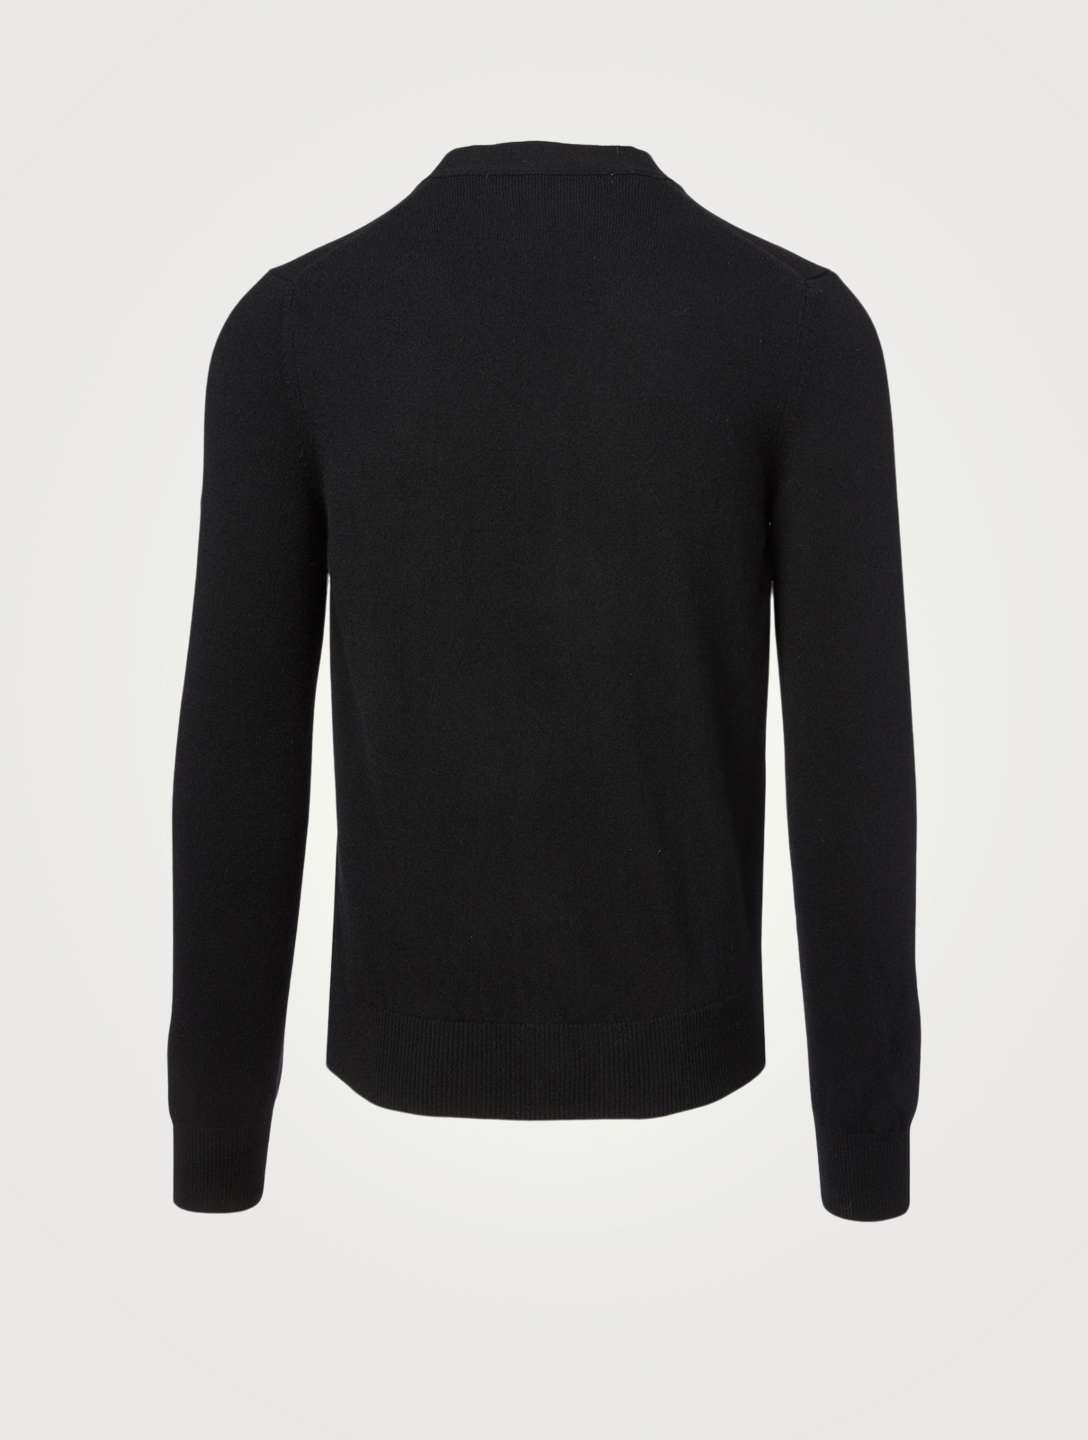 COMME DES GARÇONS PLAY Wool Cardigan With Heart Sleeve Men's Black